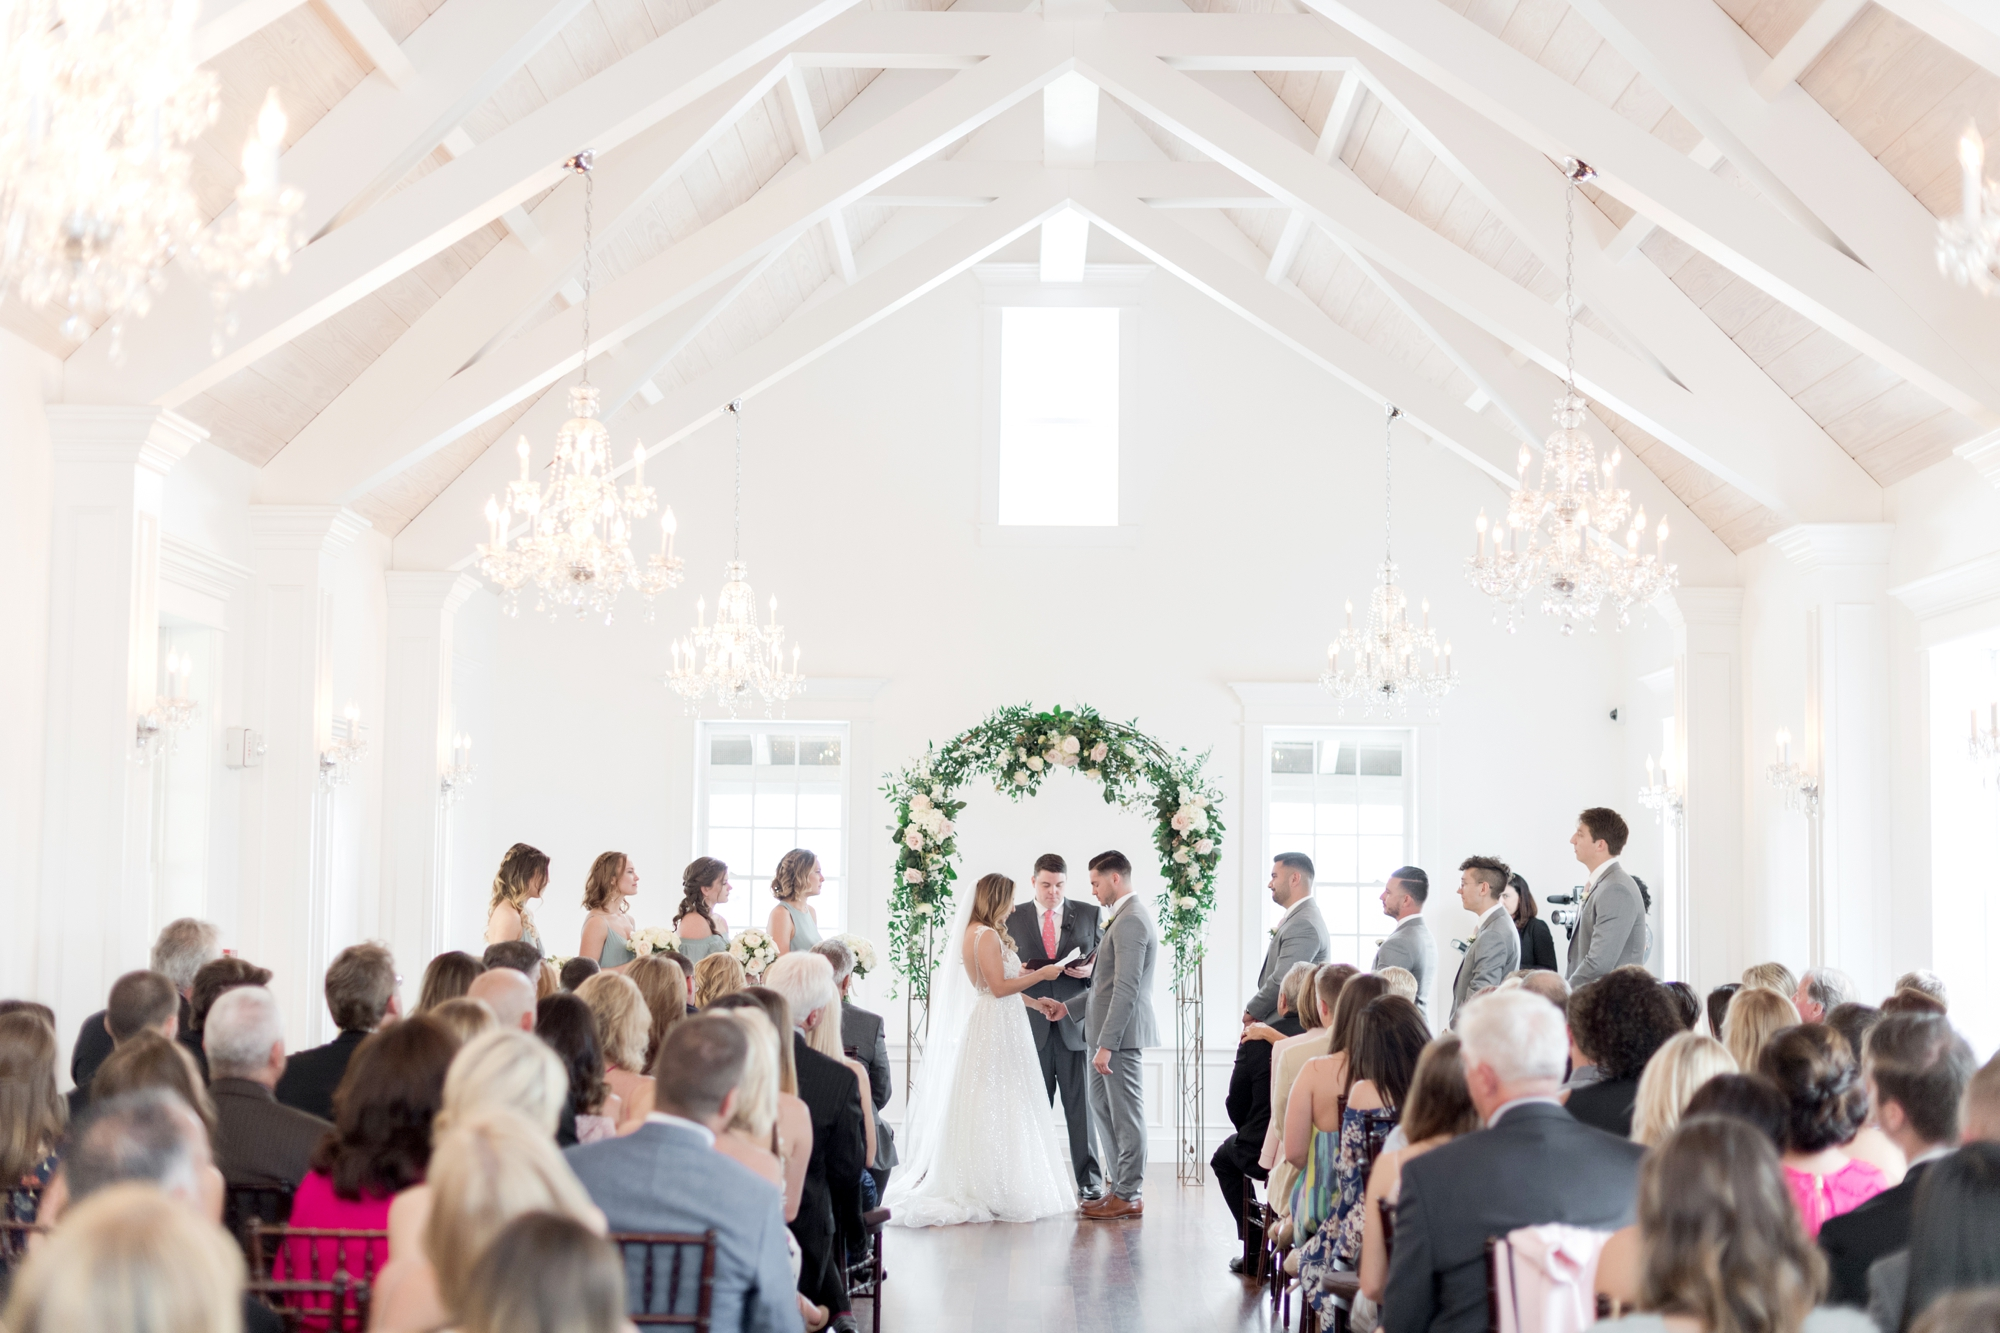 villa blanca wedding venue in st. augustine florida